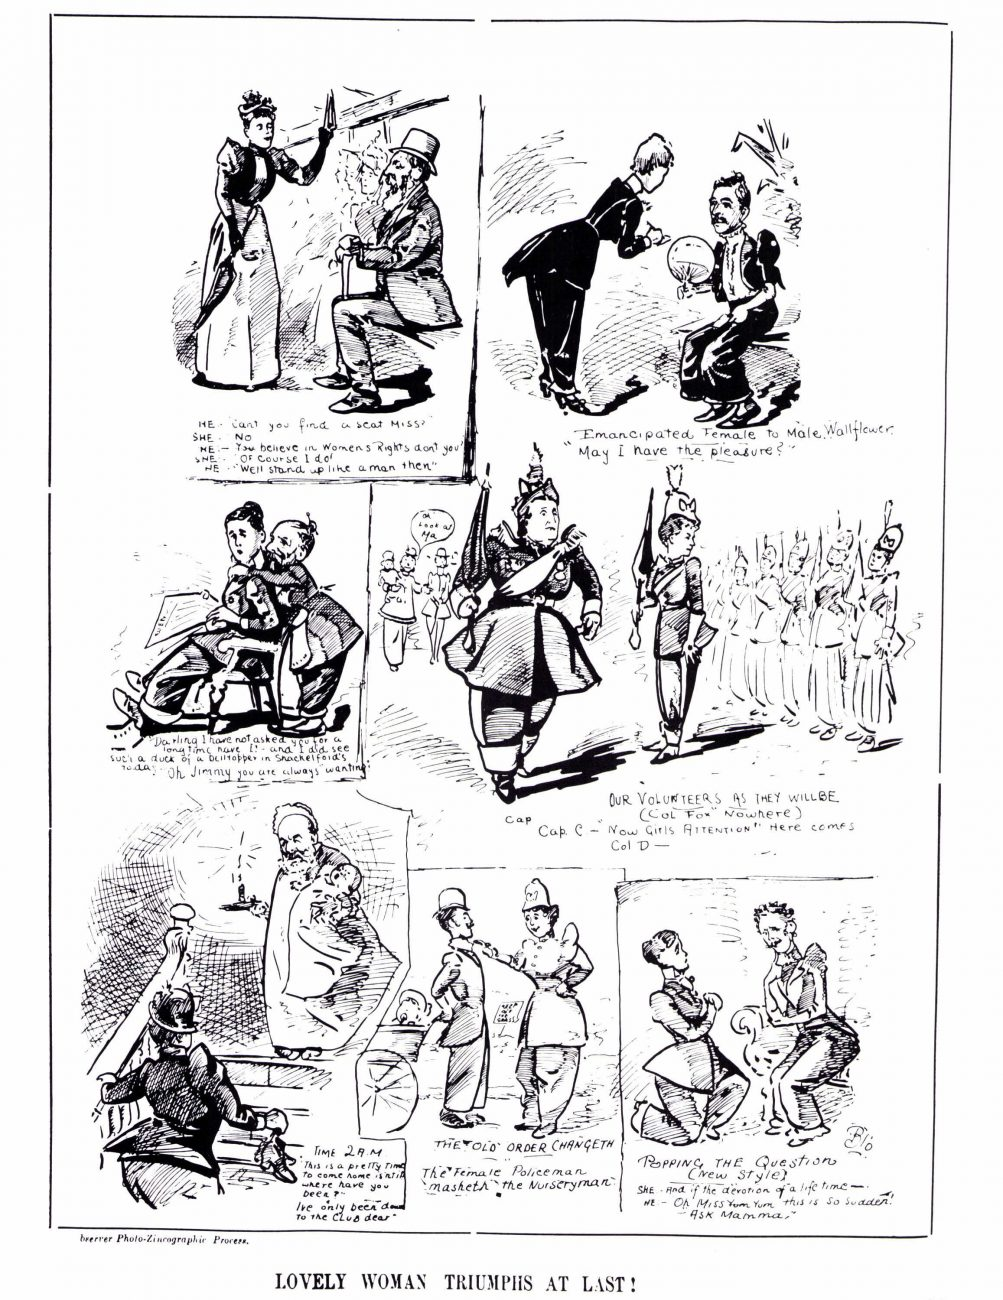 The struggle for the vote was part of a wider campaign challenging many other aspects of women's customary role in society. Opponents argued that women's emancipation would lead to the subjection of men, and the liberated woman was lampooned as having stepped into men's shoes.